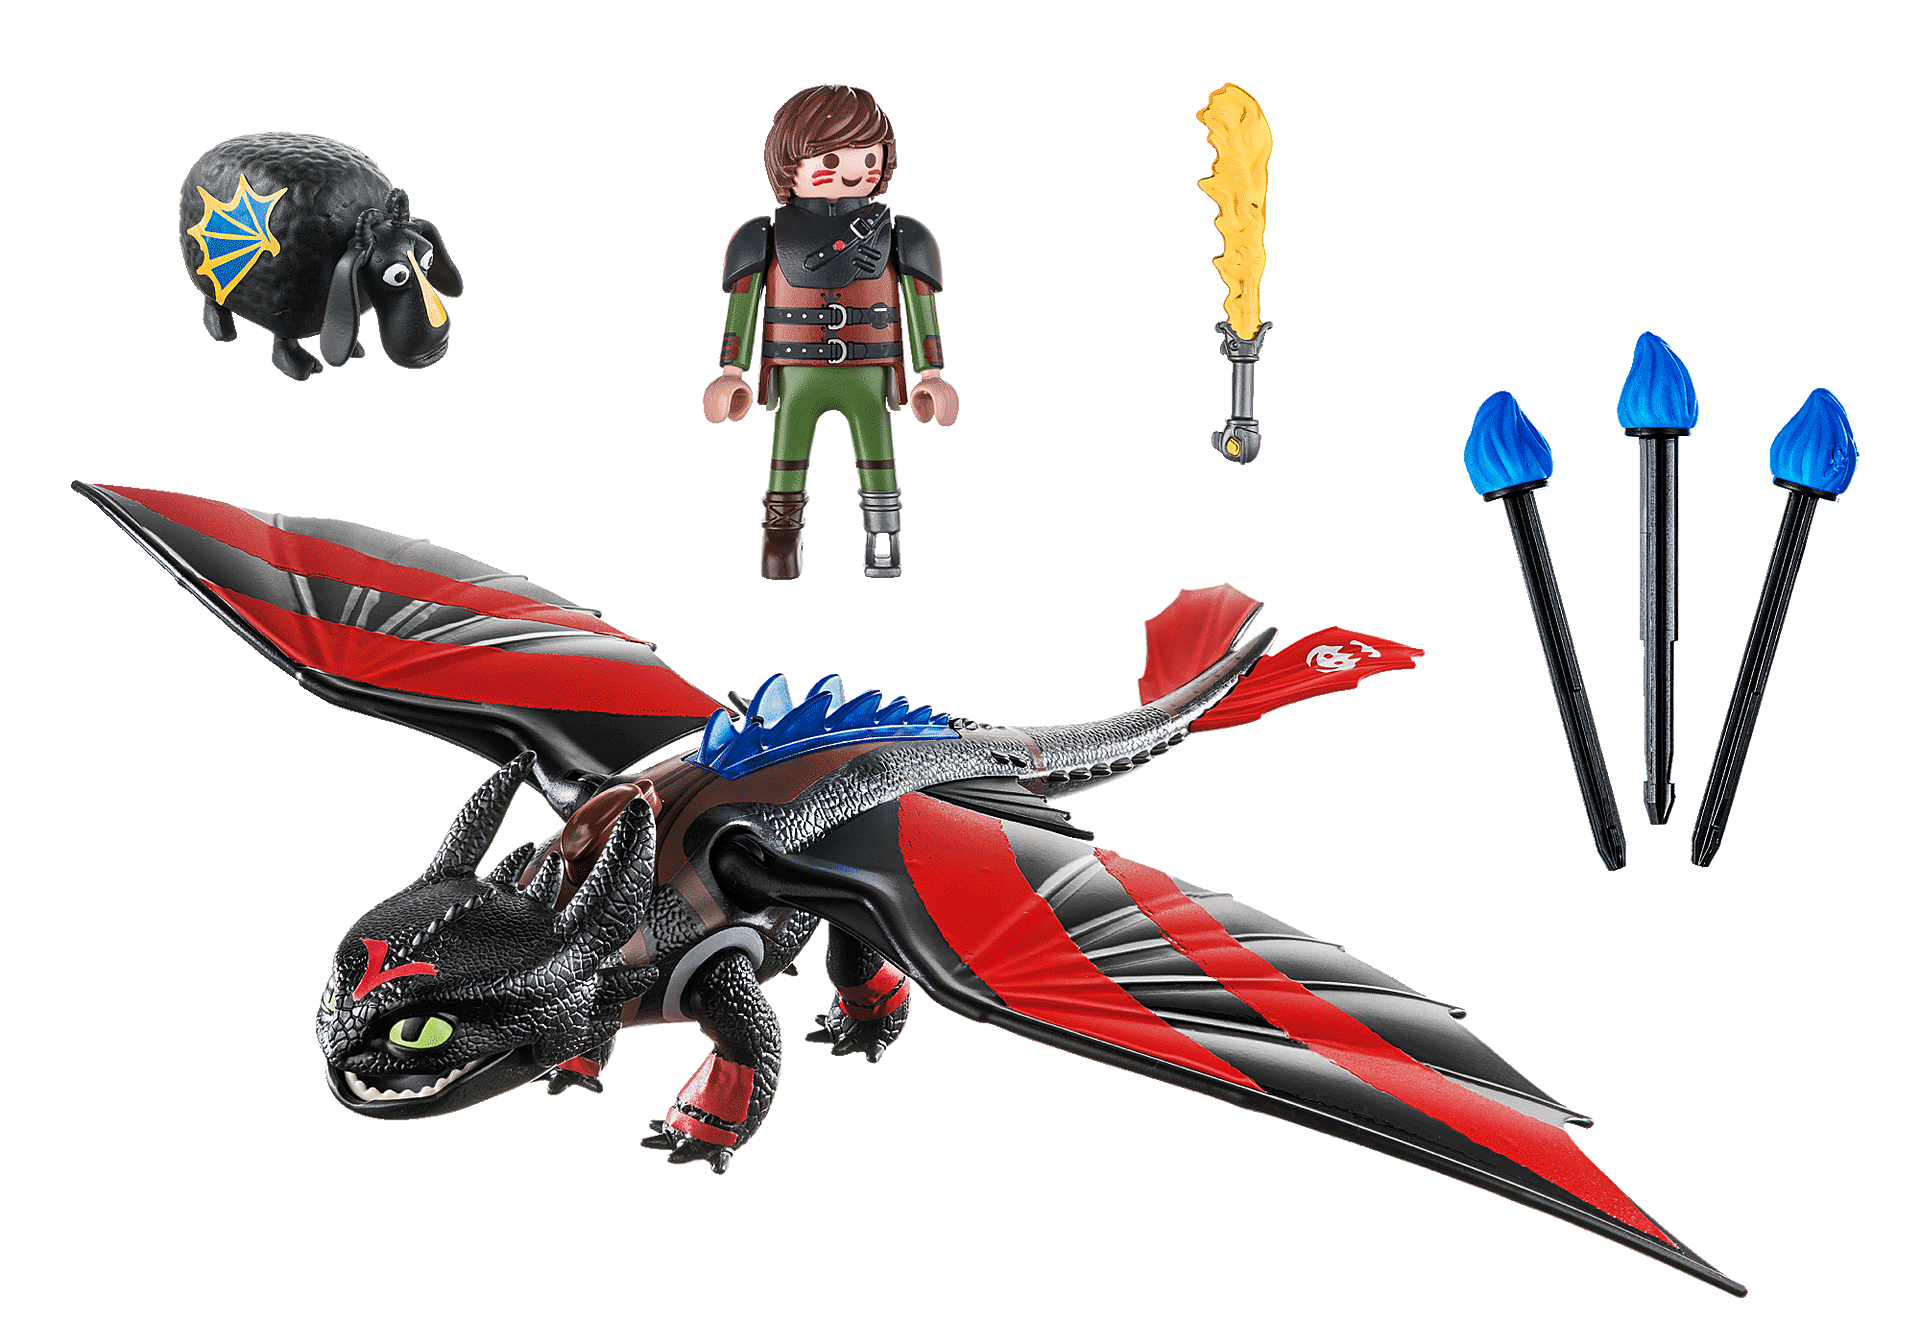 70727 Dragon Racing: Hiccup and Toothless zoom image3